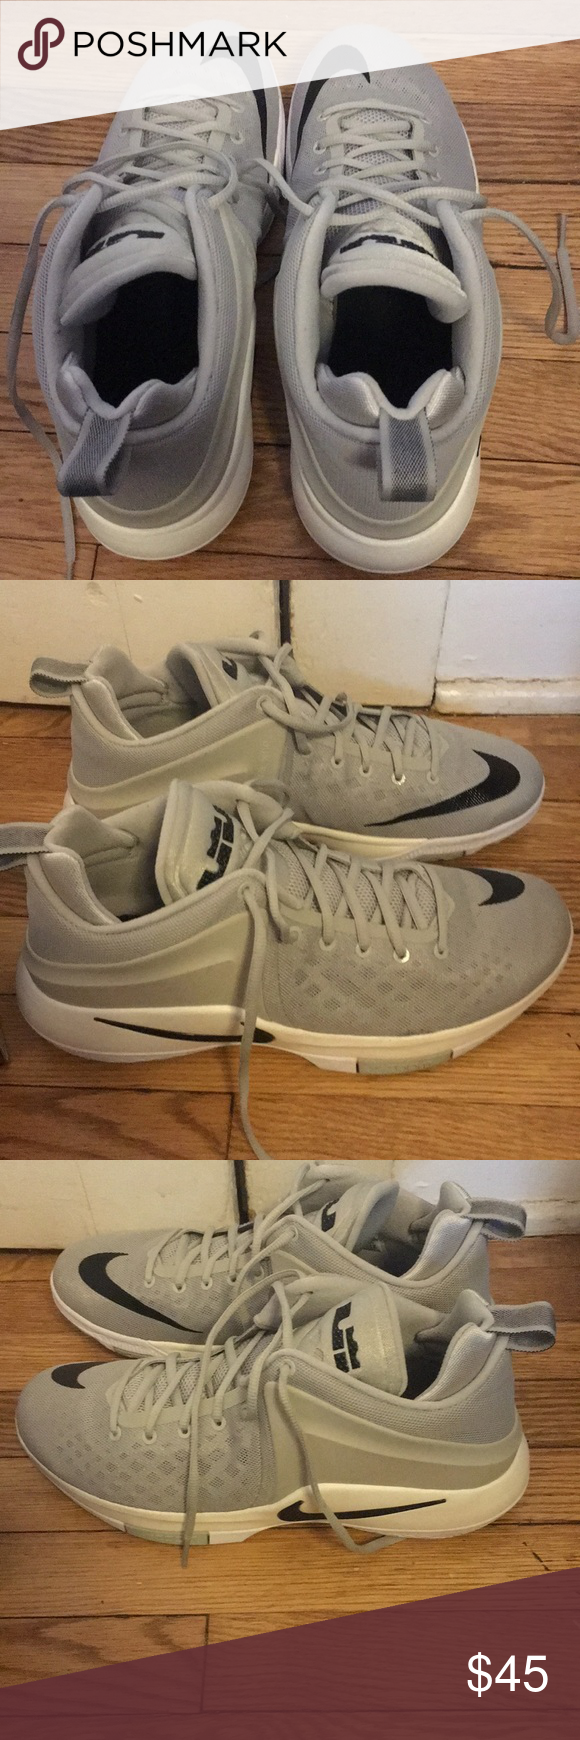 Nike Zoom Lebron Witness In very good condition Nike Zoom Lebron Witness  with original box (no top). Only warn 3 times. Just too big on me.